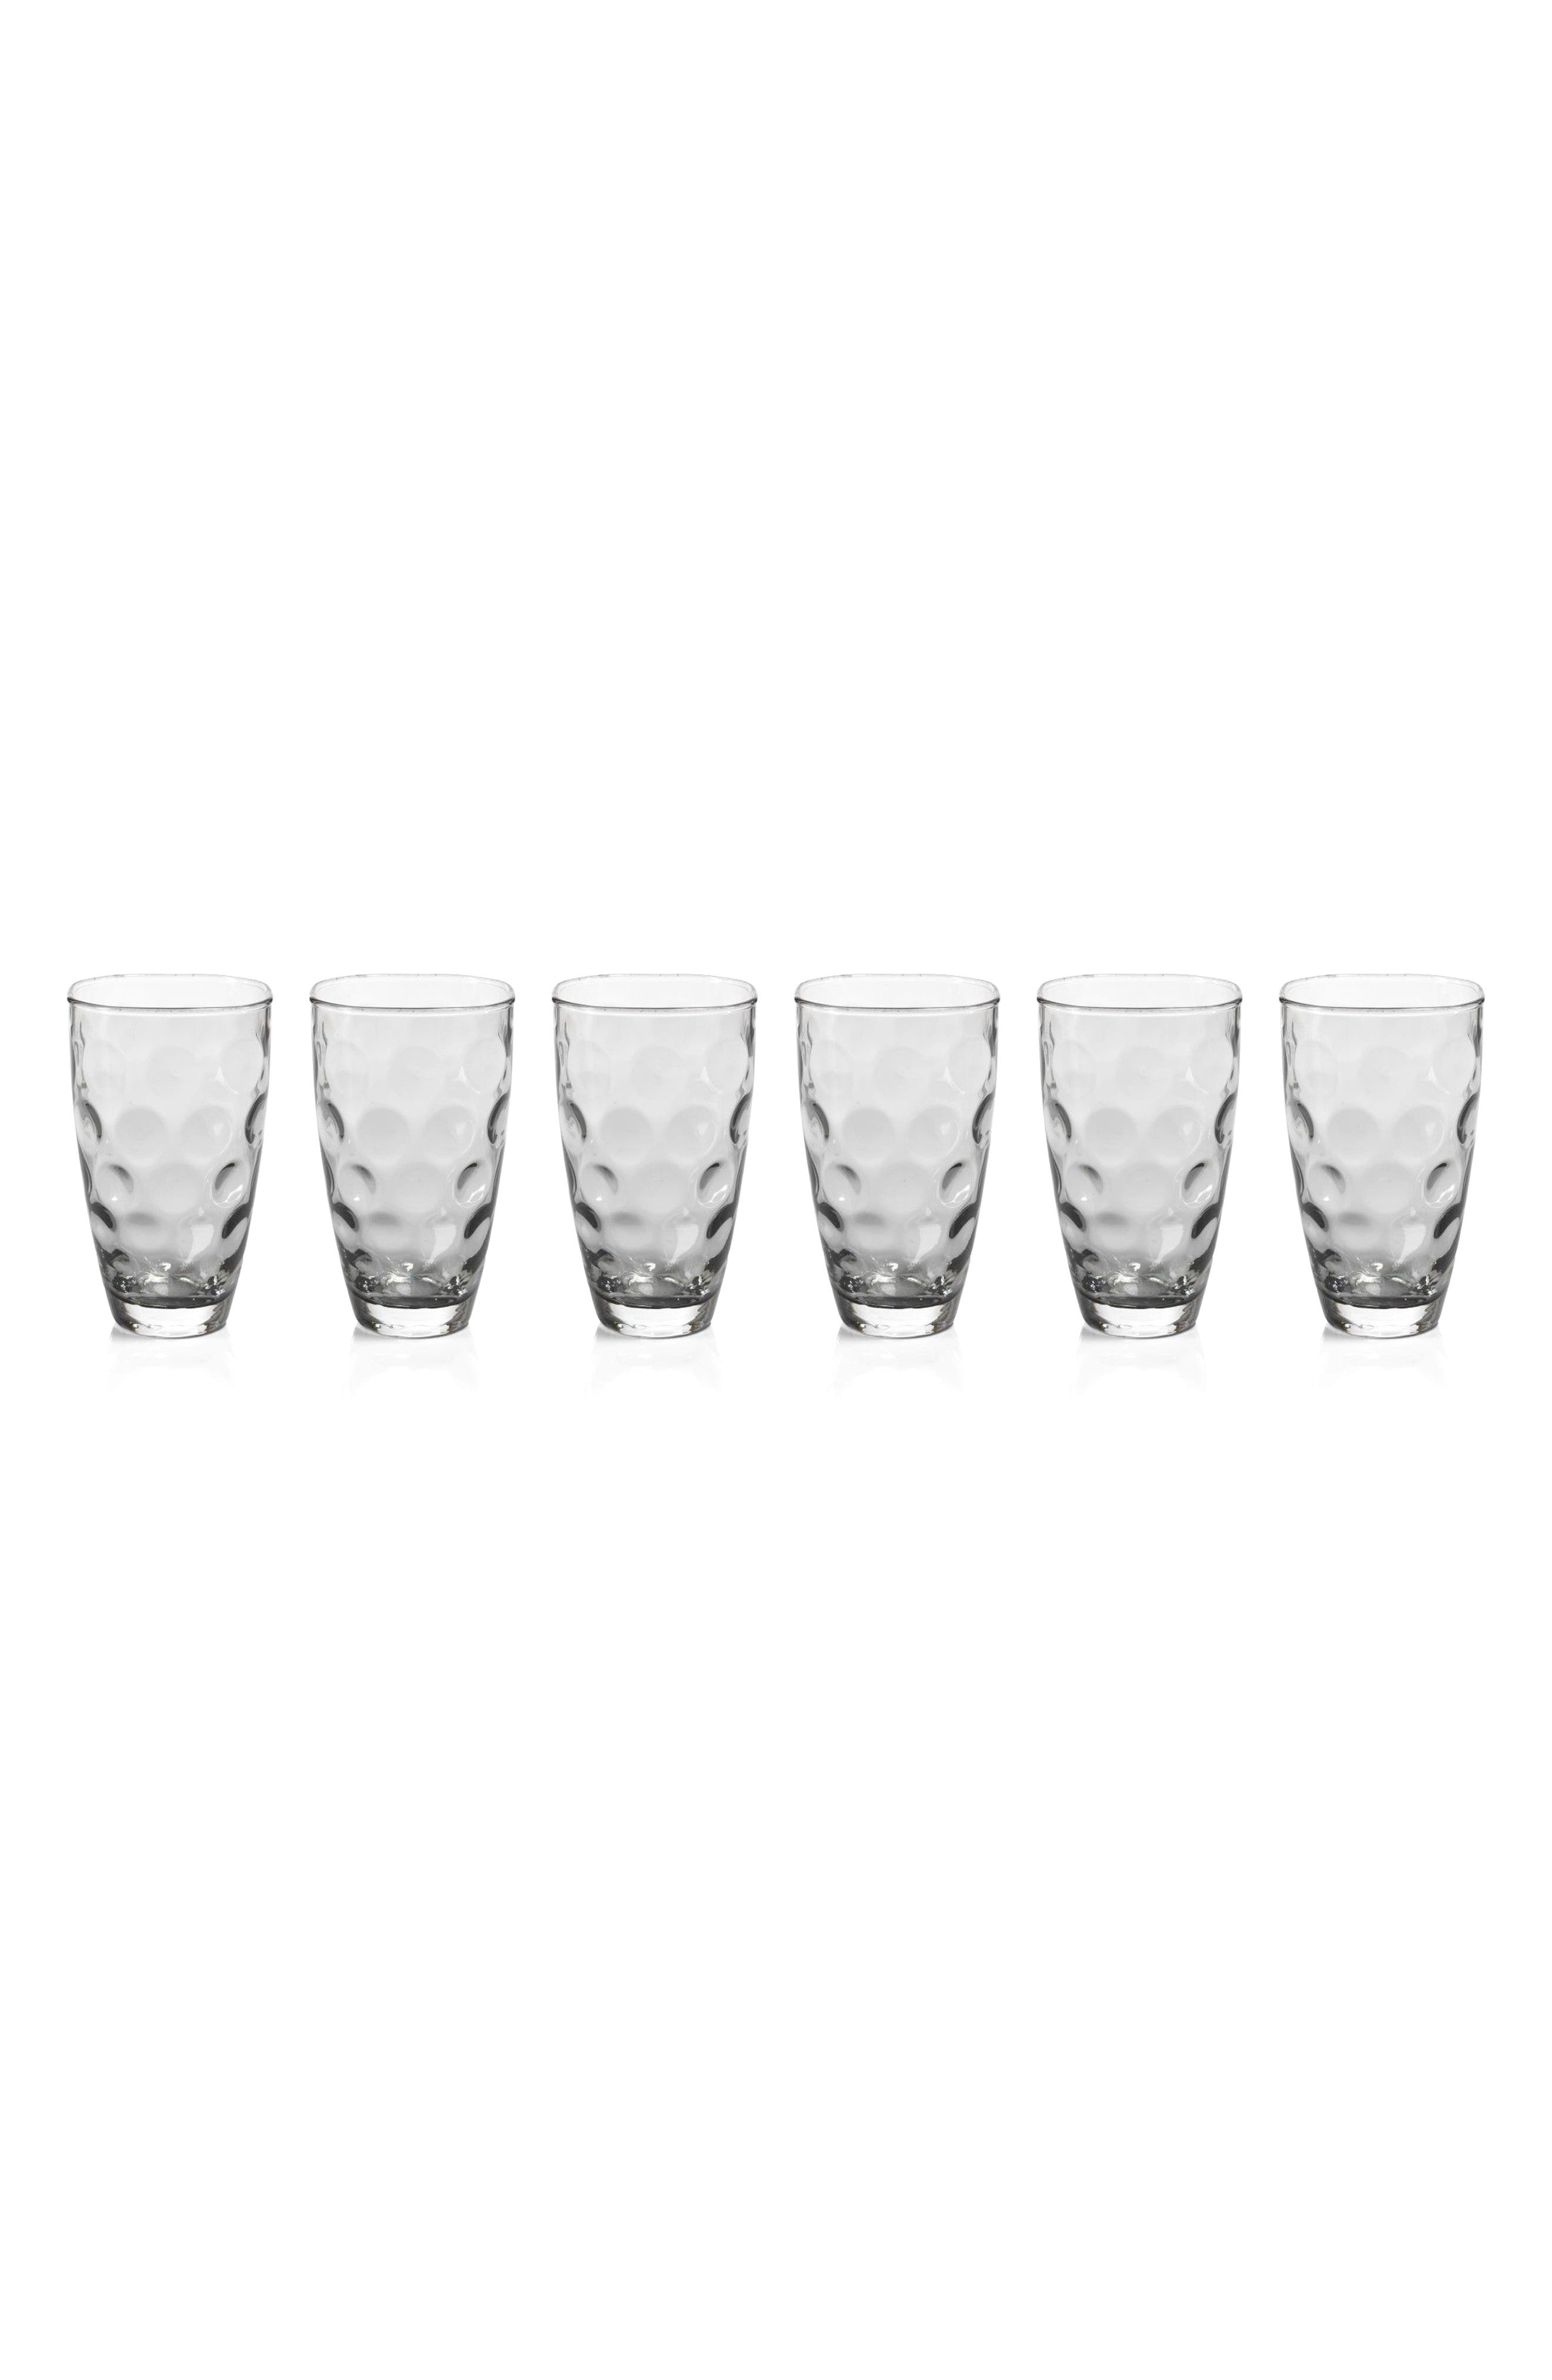 Dimpled Set of 6 Highball Glasses,                         Main,                         color, Clear/ Grey